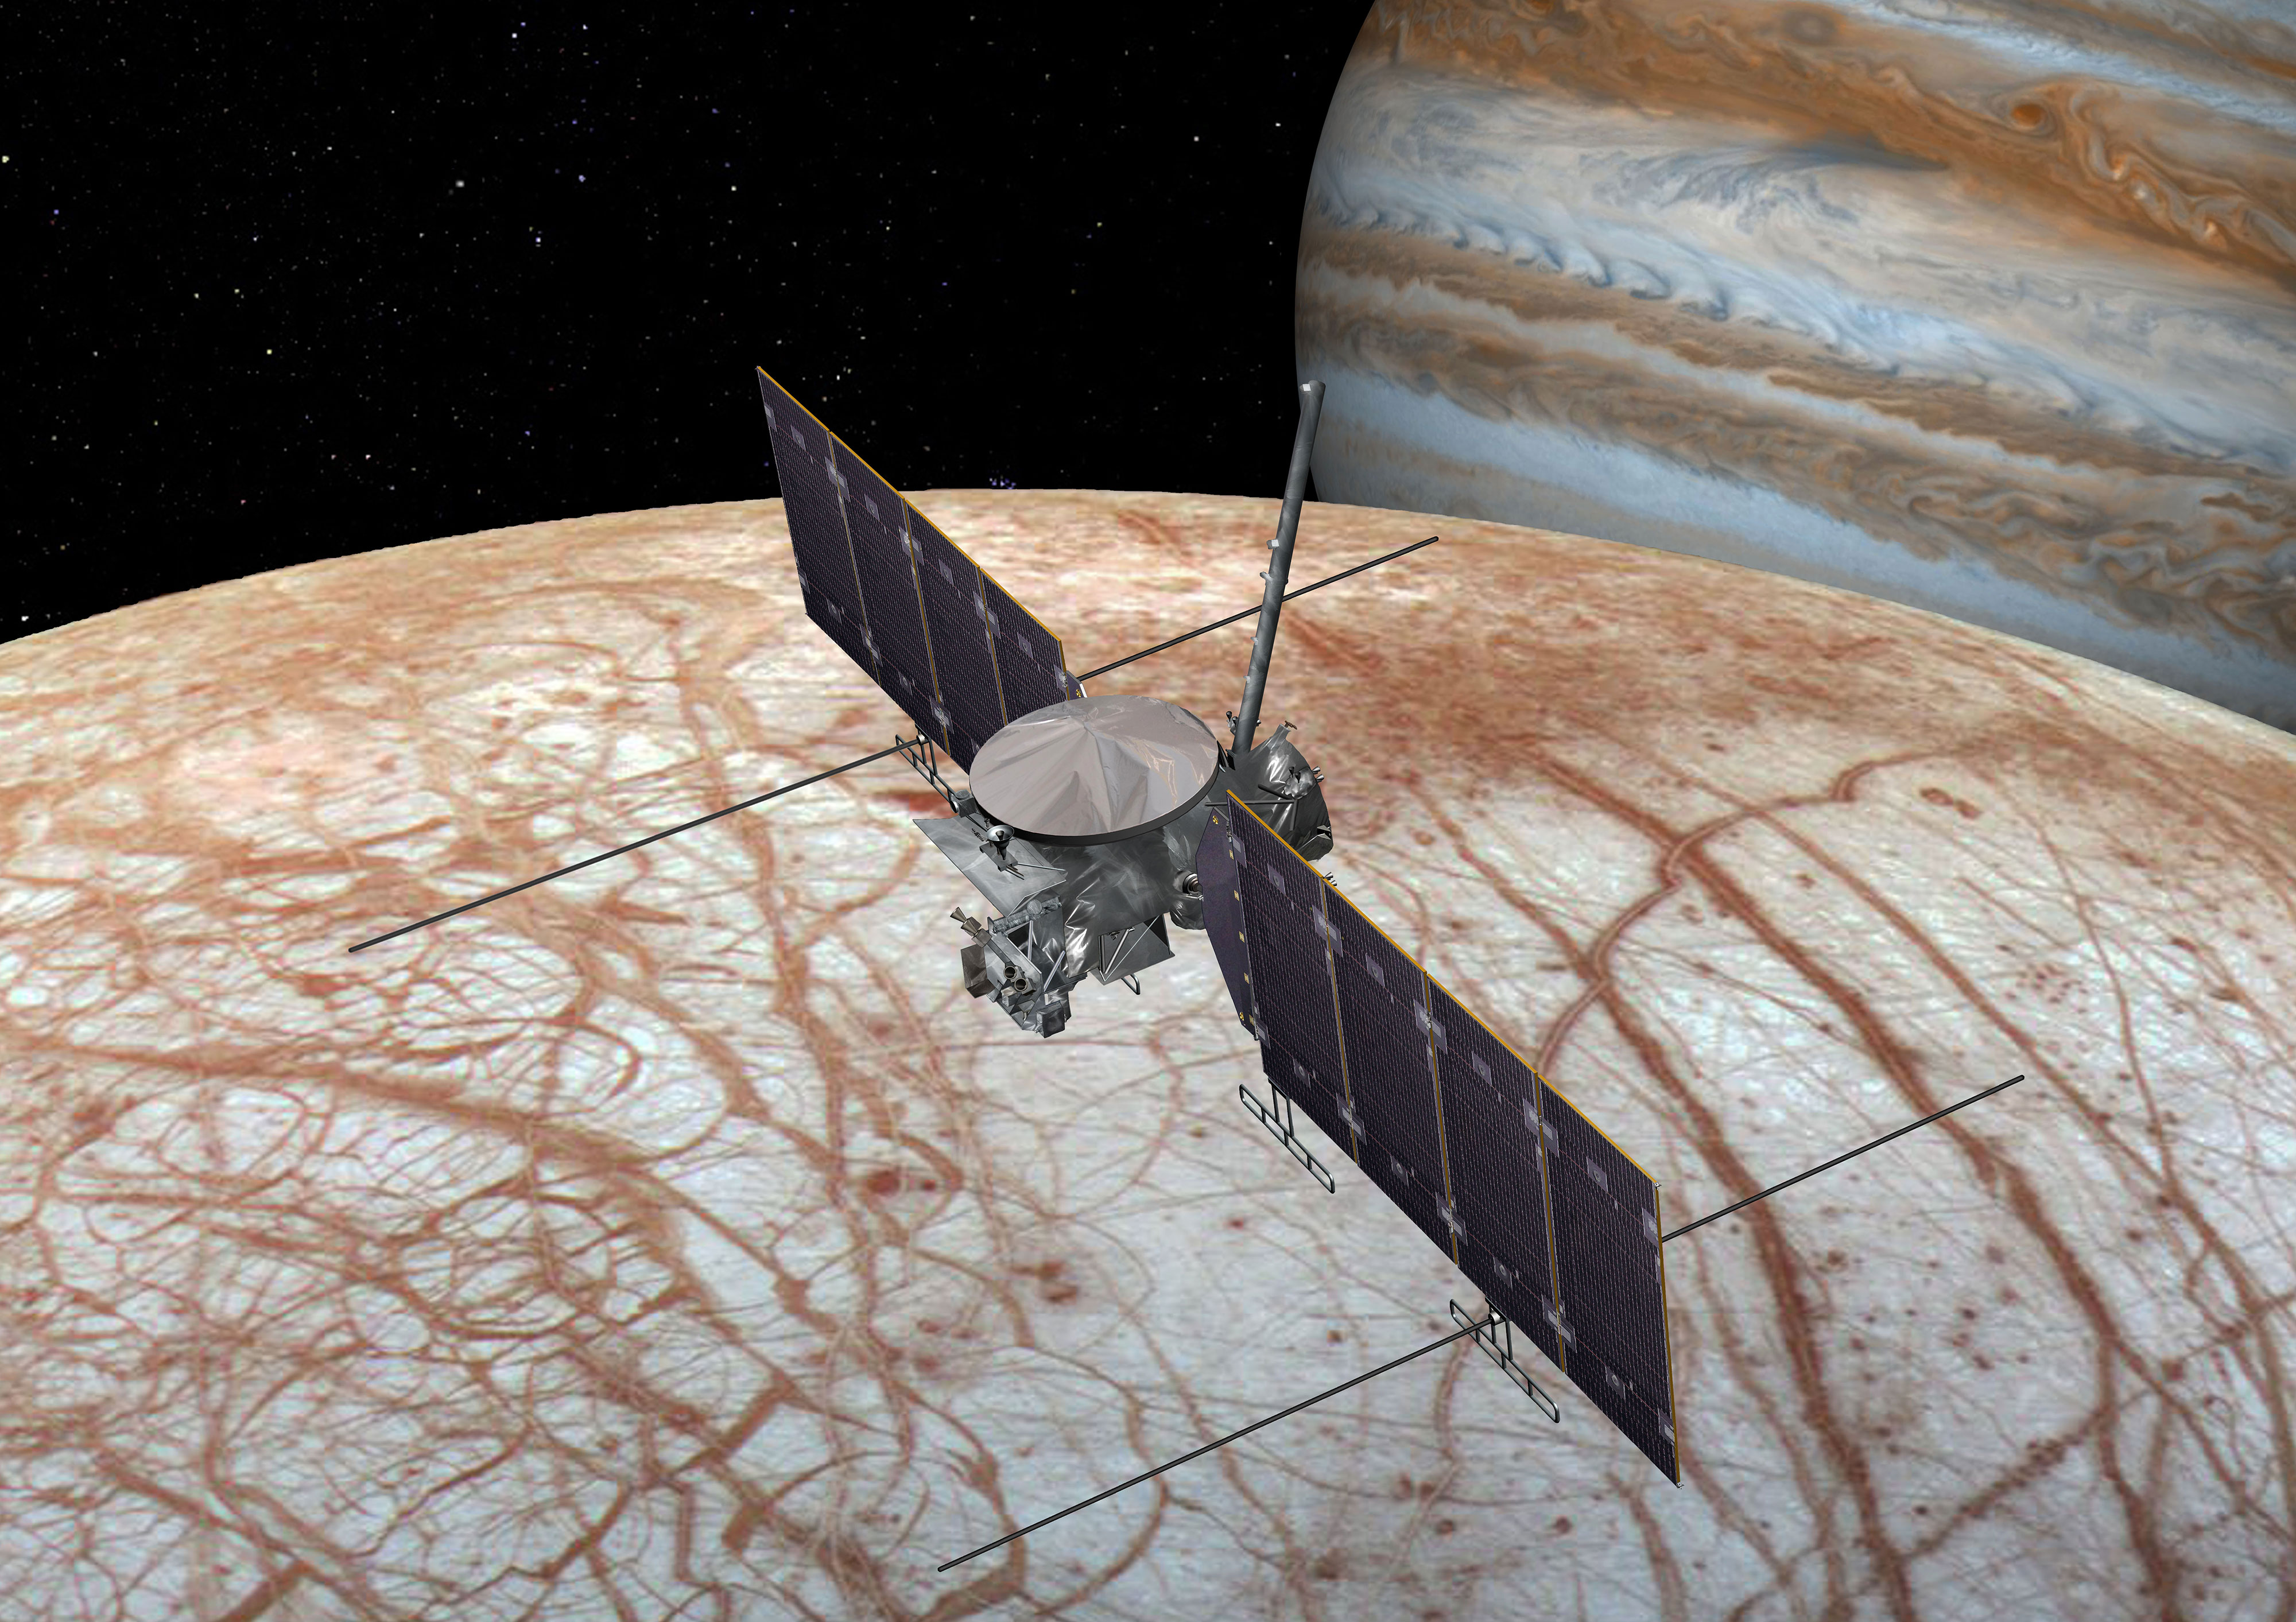 This artist's rendering shows NASA's Europa mission spacecraft, which is being developed for a launch sometime in the 2020s. Credit: NASA/JPL-Caltech